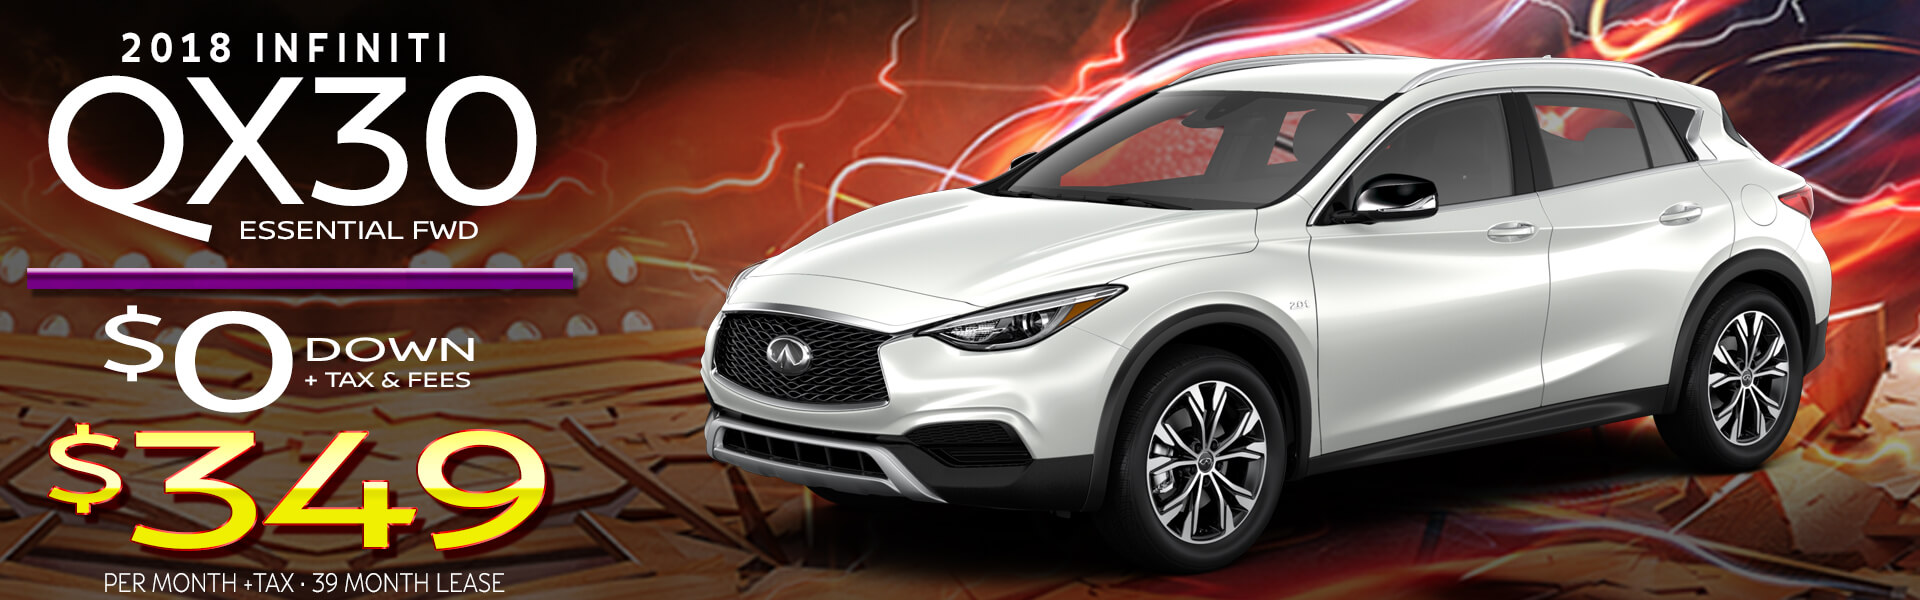 QX30 HP Offer